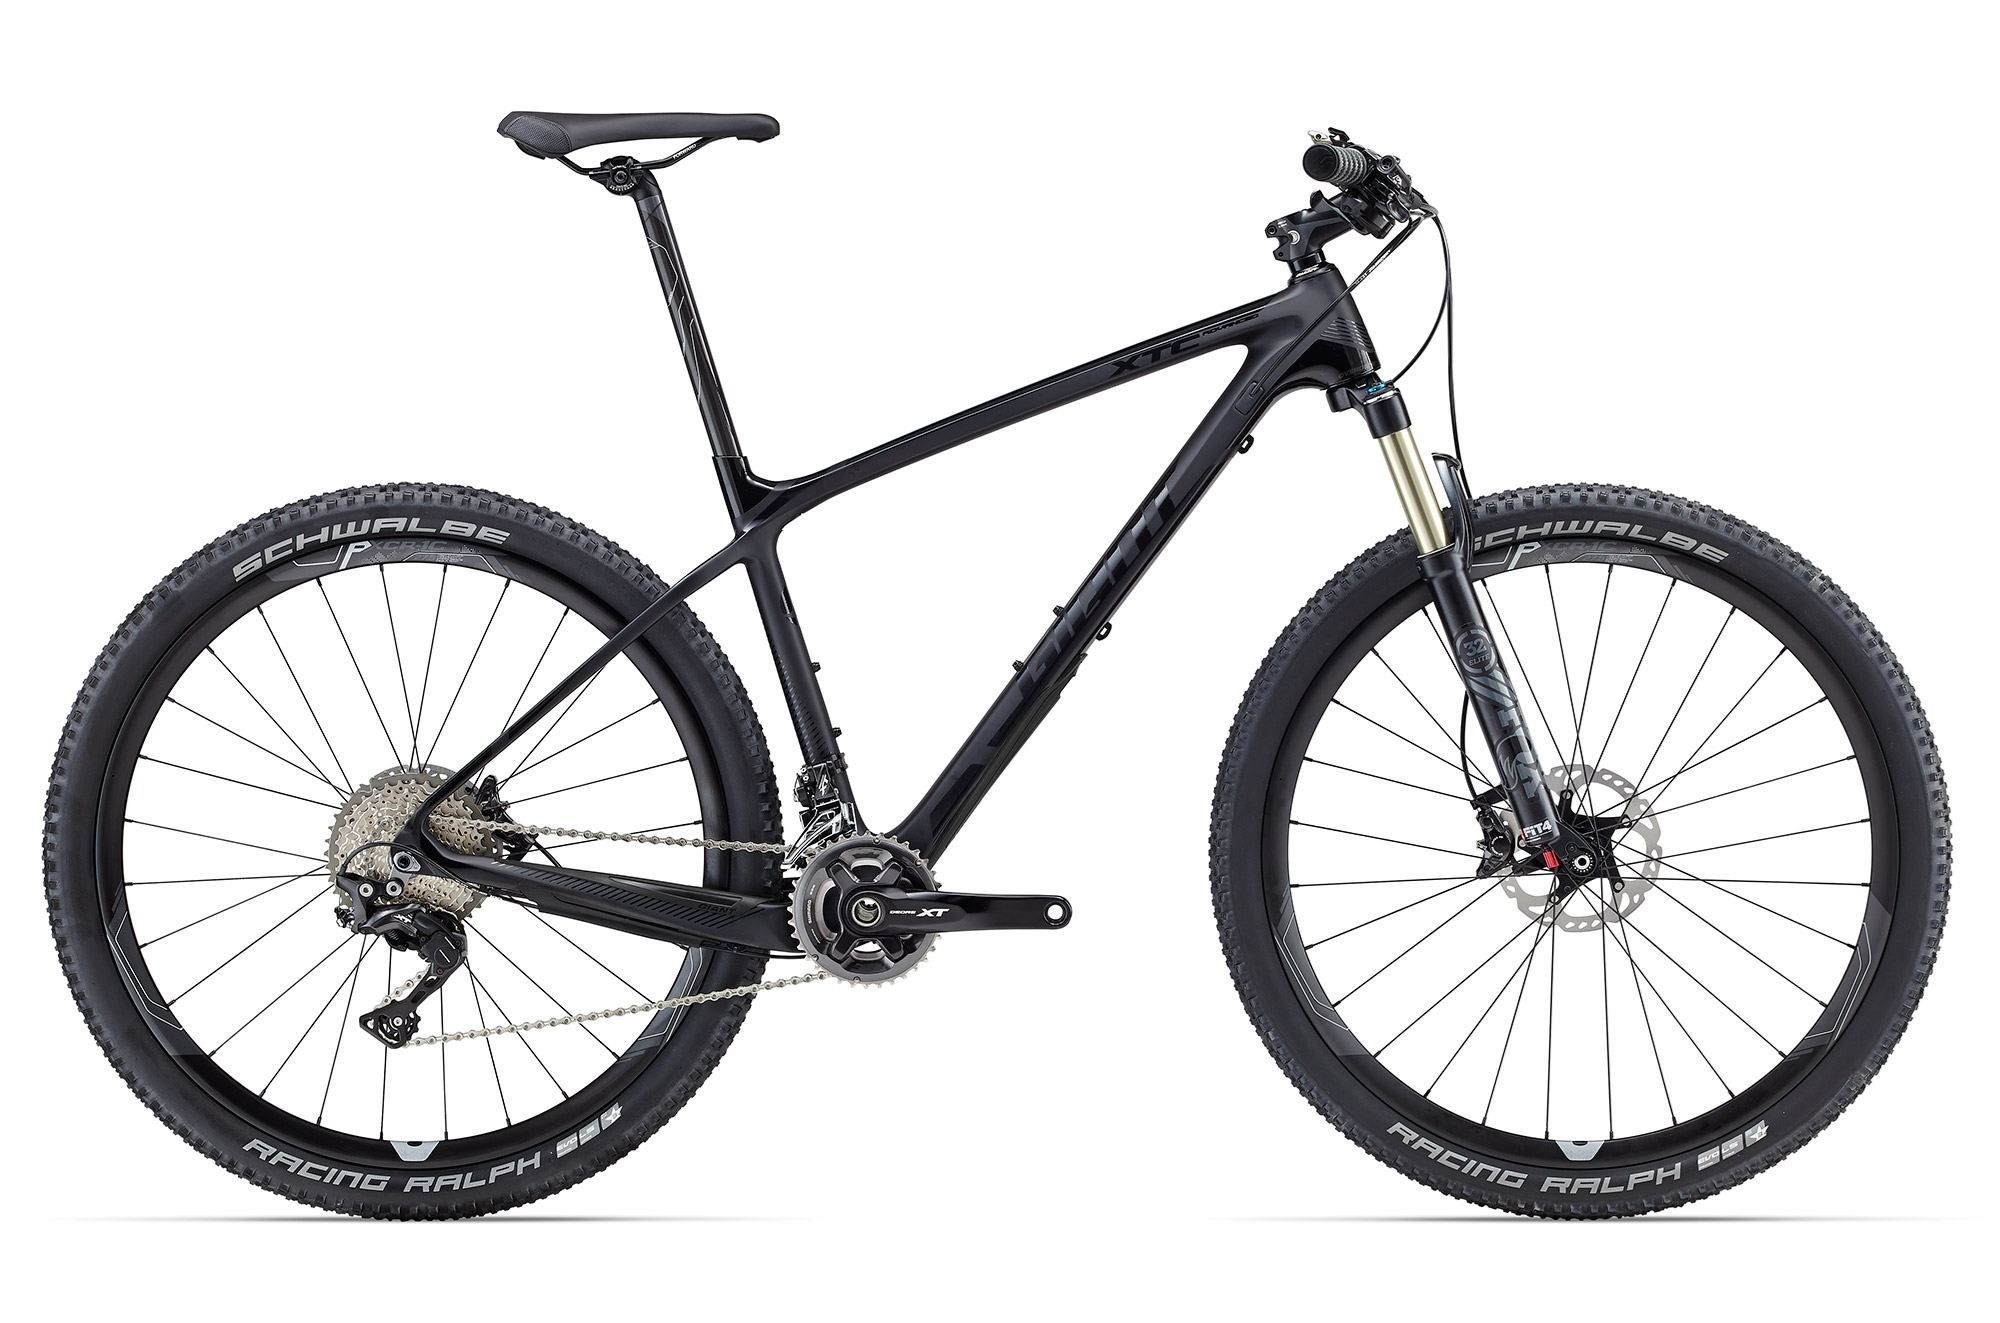 Велосипед Giant XtC Advanced 27.5 1 2016 велосипед giant xtc advanced 27 5 2 2014